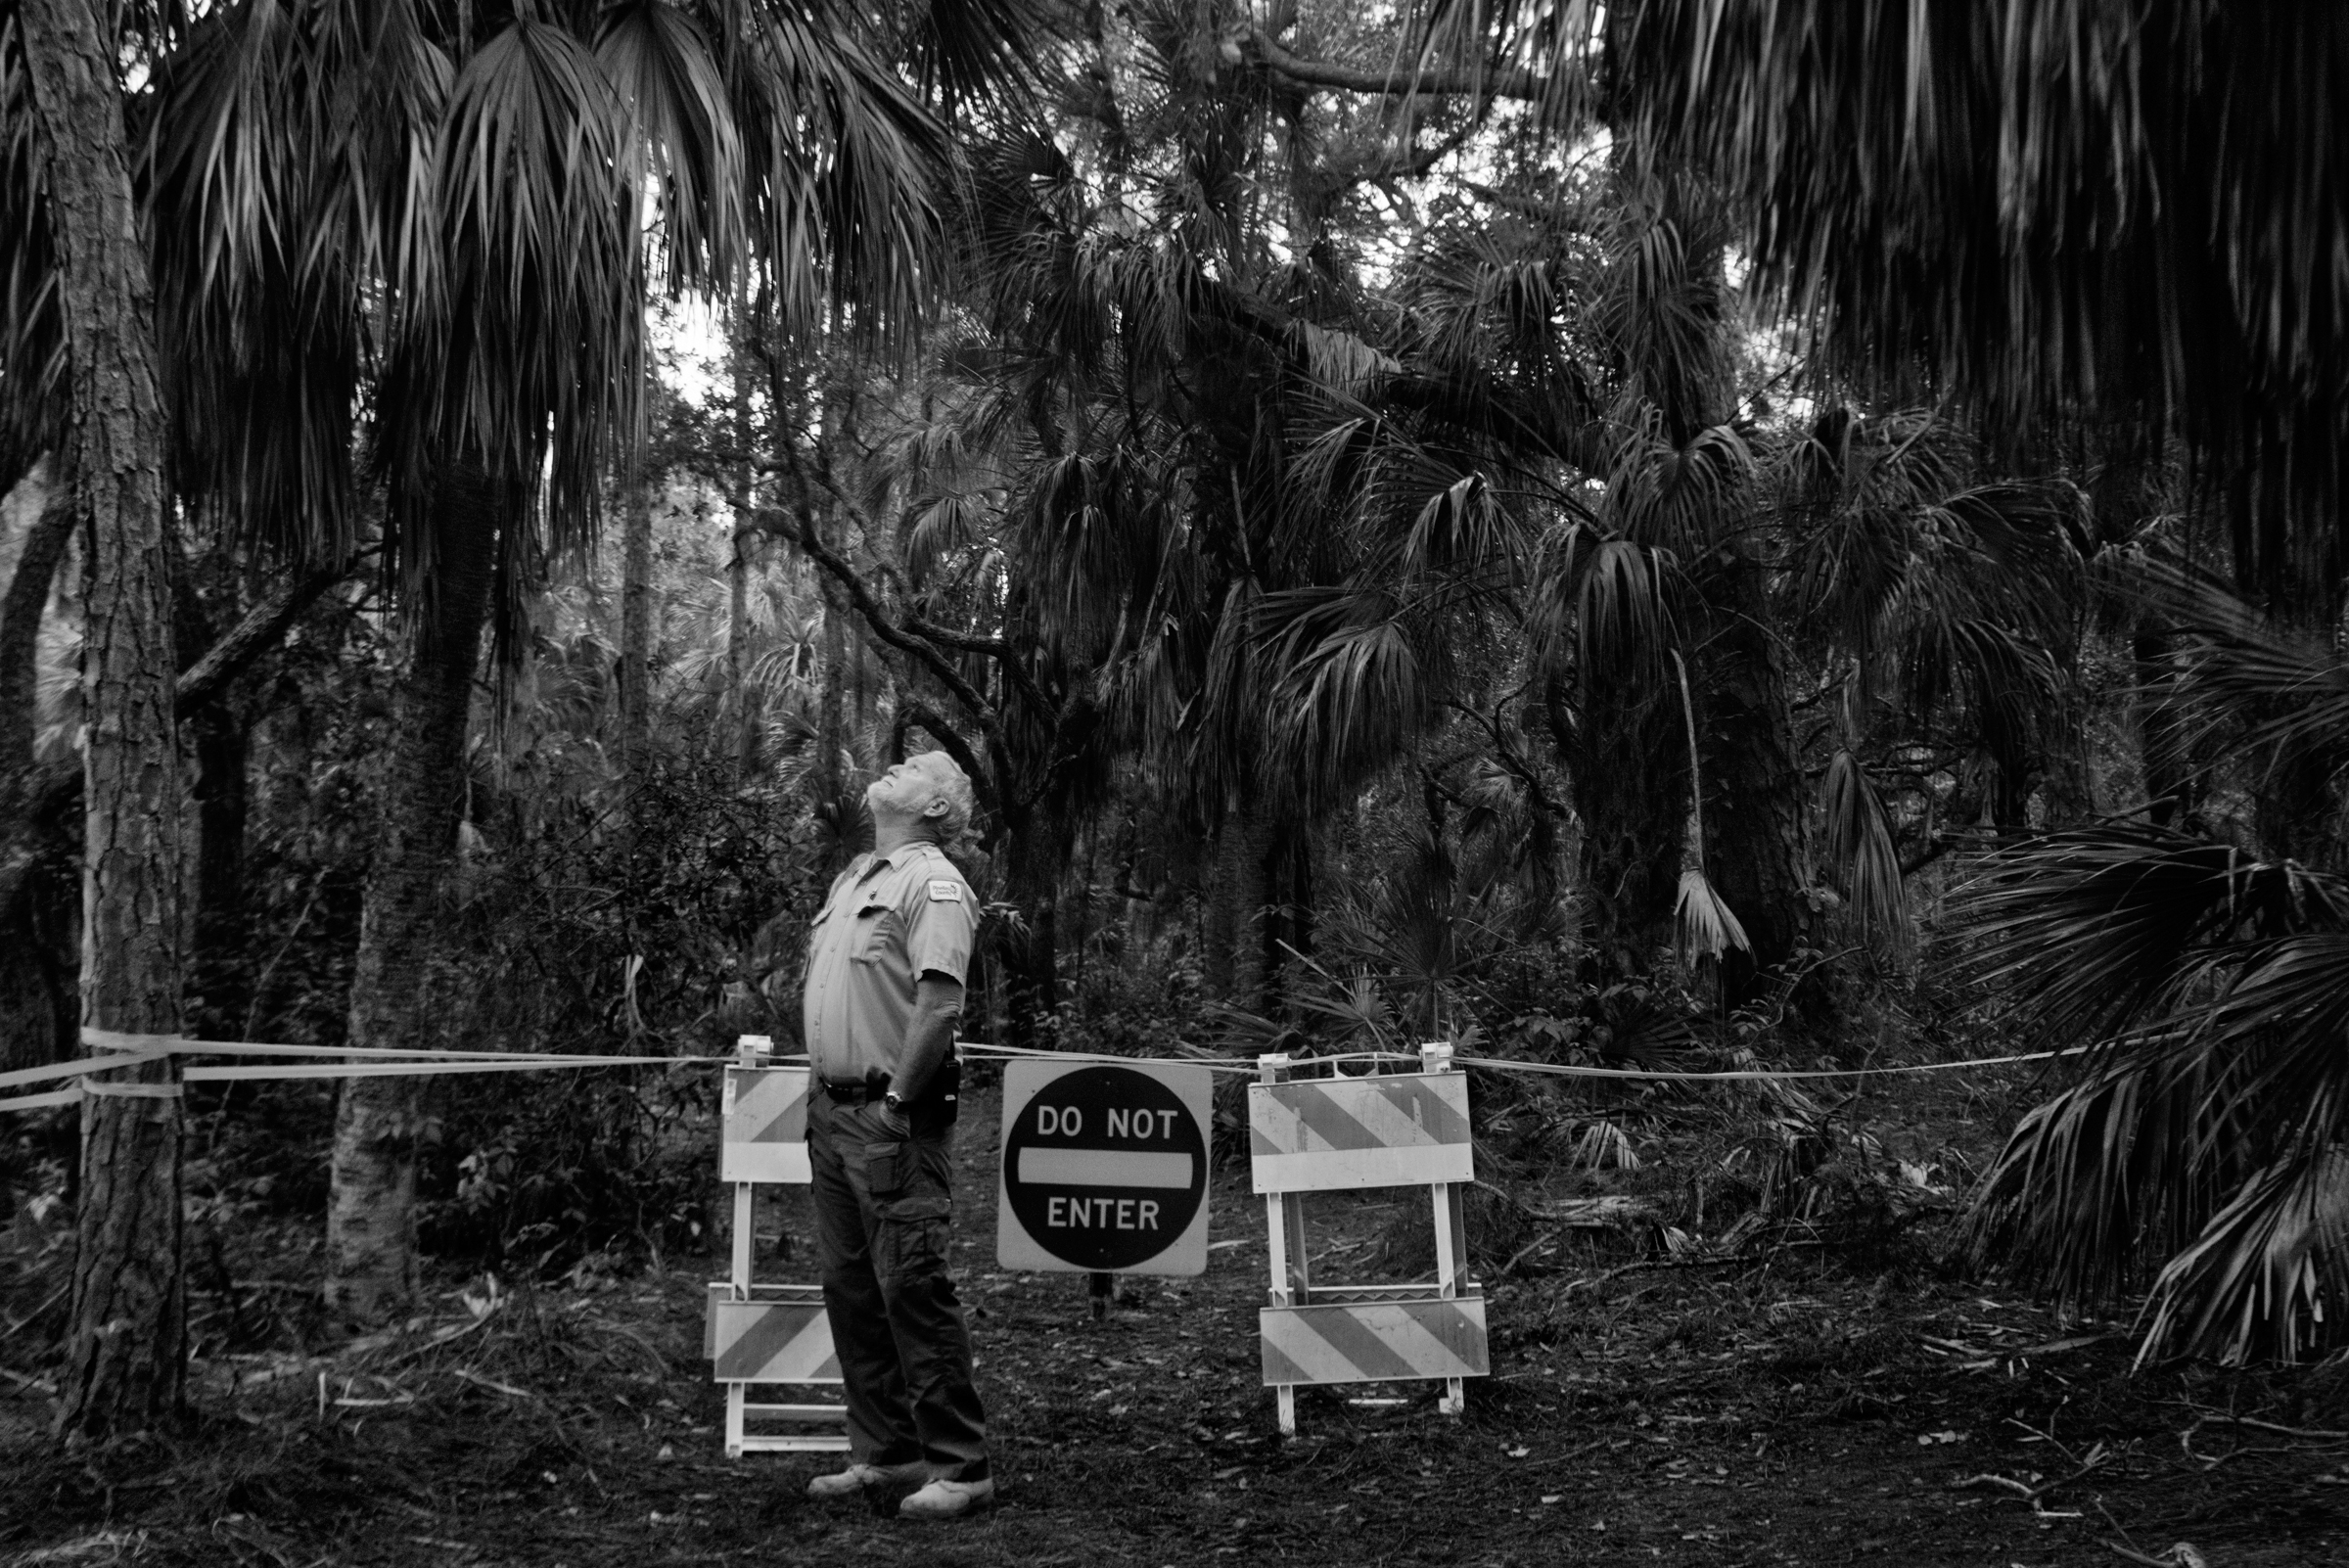 Barricades and signs protect nesting birds from prying eyes. In Florida's Fort De Soto Park, supervisor Jim Wilson tries to keep the peace between humans and birds. Melissa Lyttle